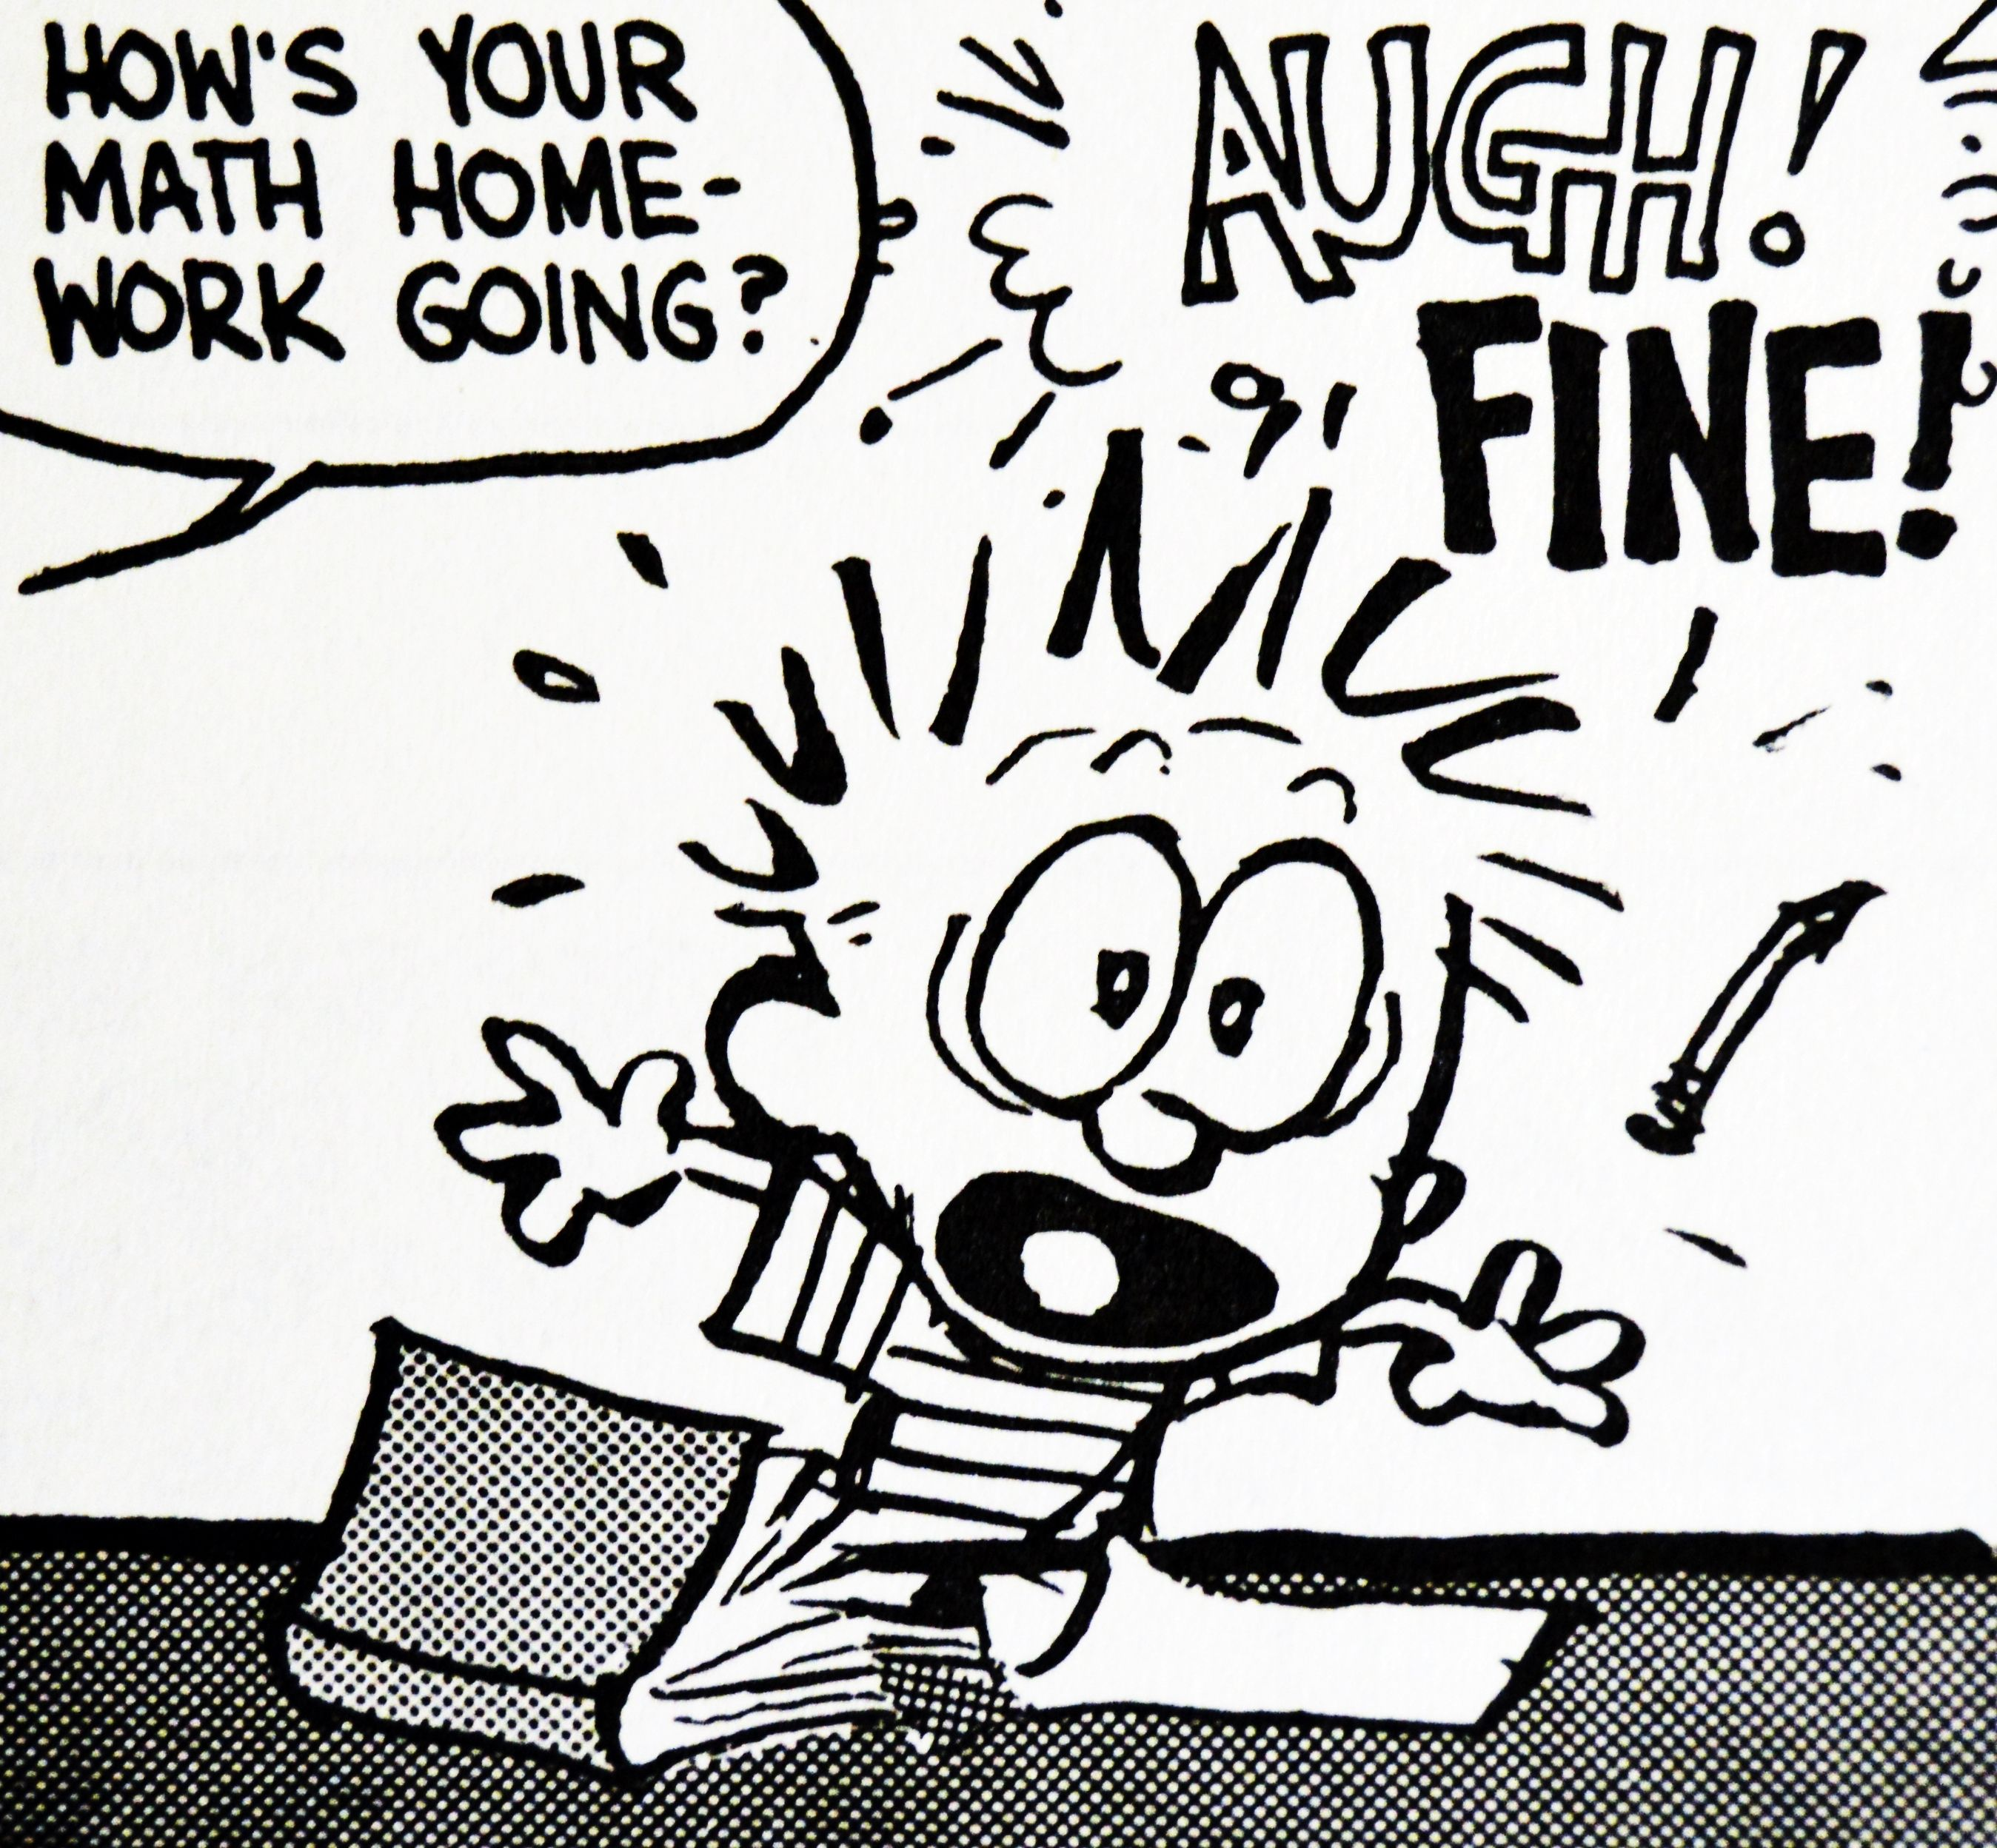 """Calvin and Hobbes QUOTE OF THE DAY (DA): """"When I grow up I want to be an inventor. First I will invent a time machine. Then I'll come back to yesterday and take myself to tomorrow and skip this dumb assignment.""""  ― Bill Watterson"""